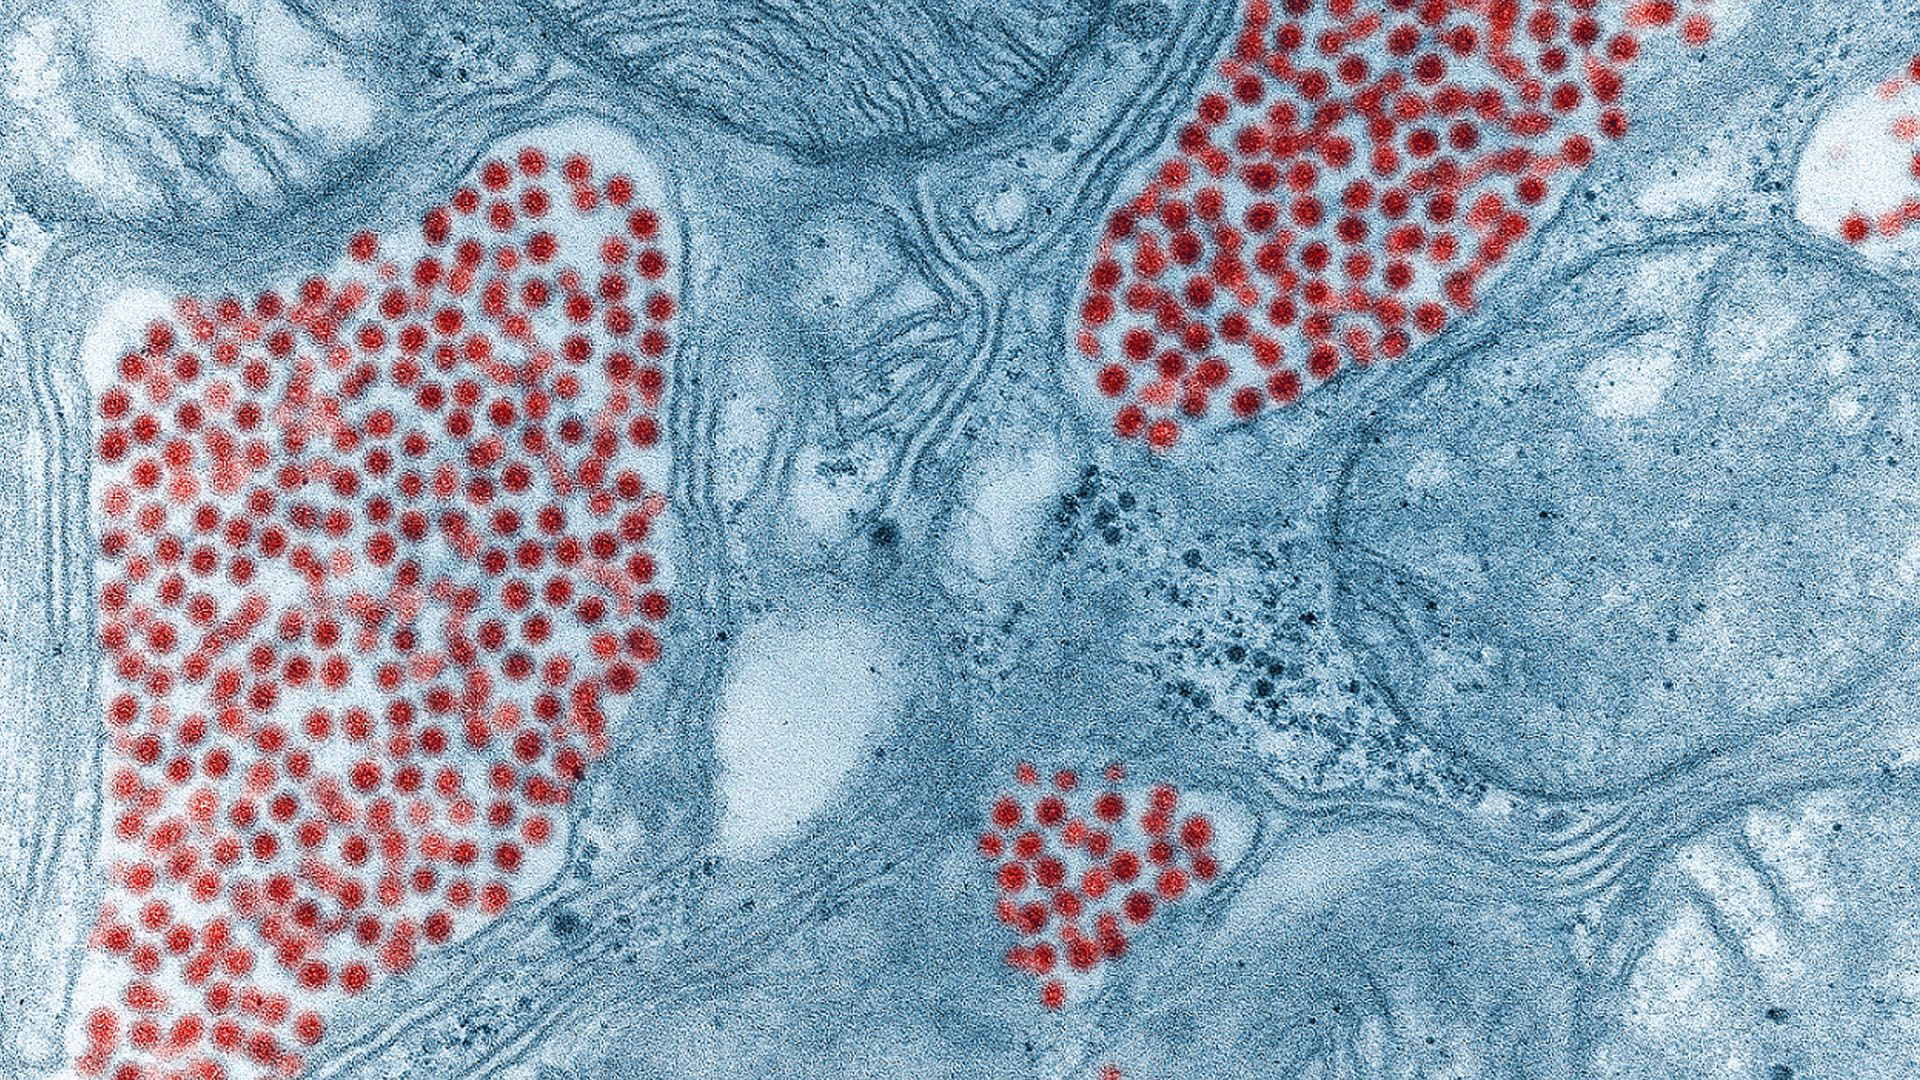 Colorized electron microscope image of mosquito salivary gland tissue infected by the EEE virus